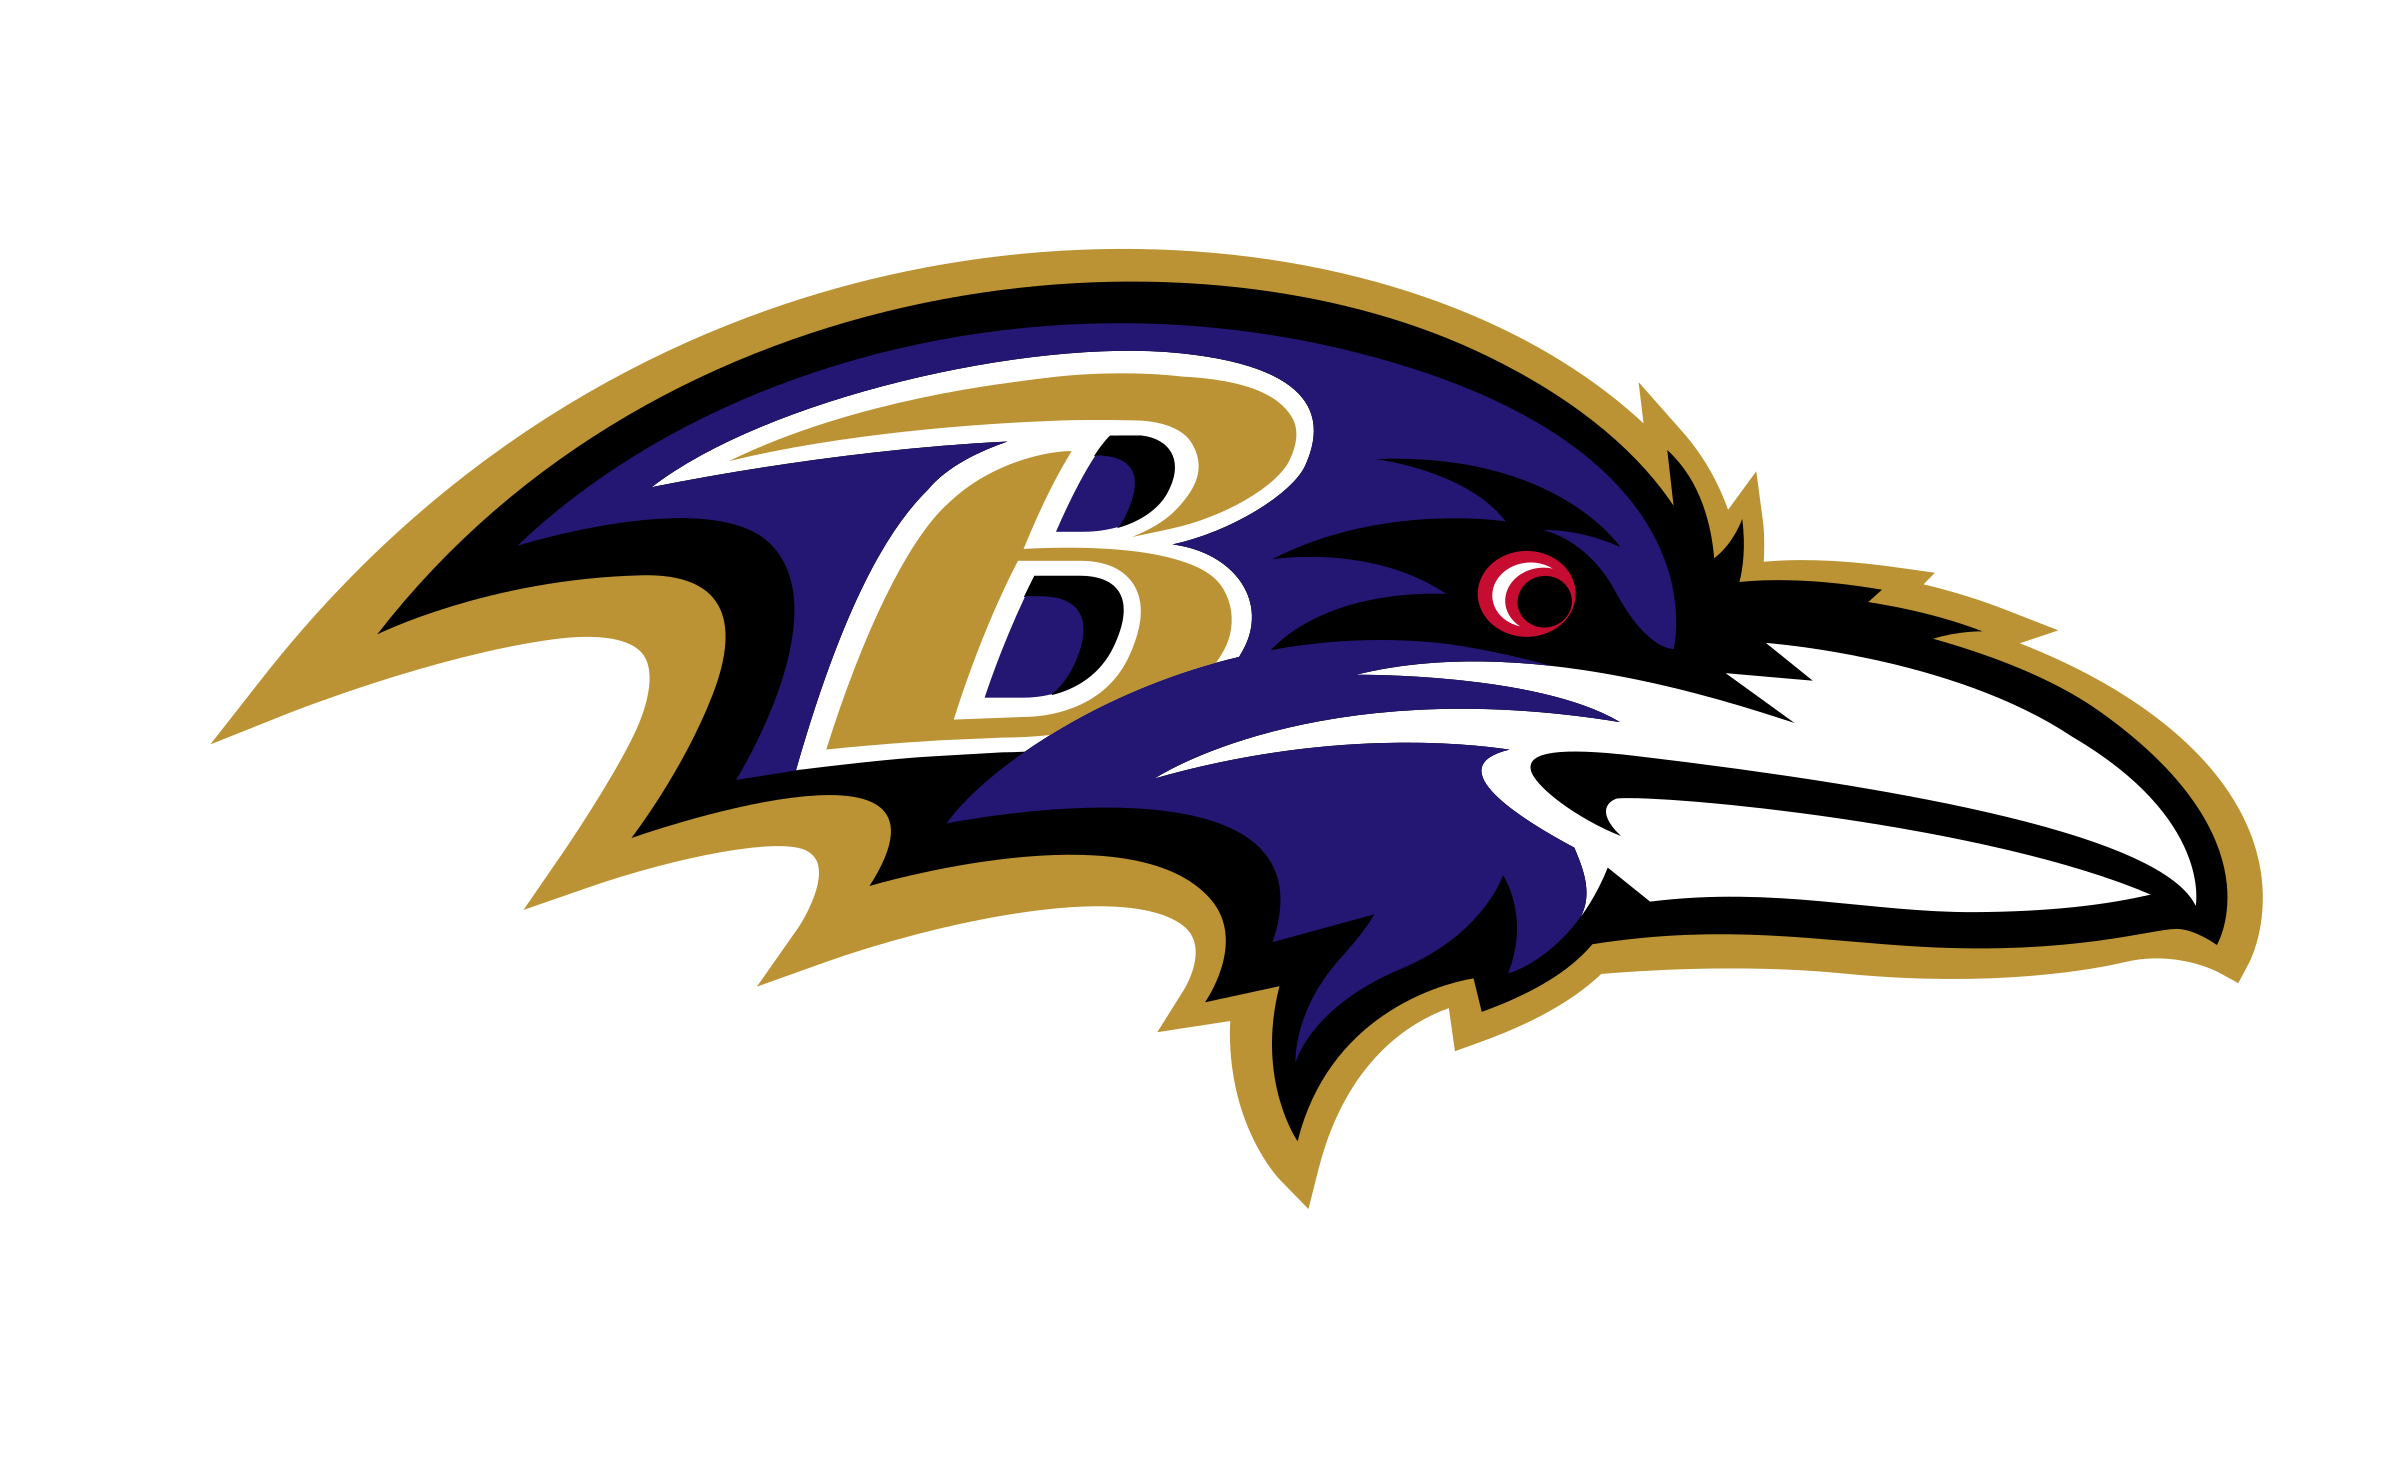 Ravens logo clipart banner royalty free download Baltimore ravens logo clipart images gallery for free ... banner royalty free download